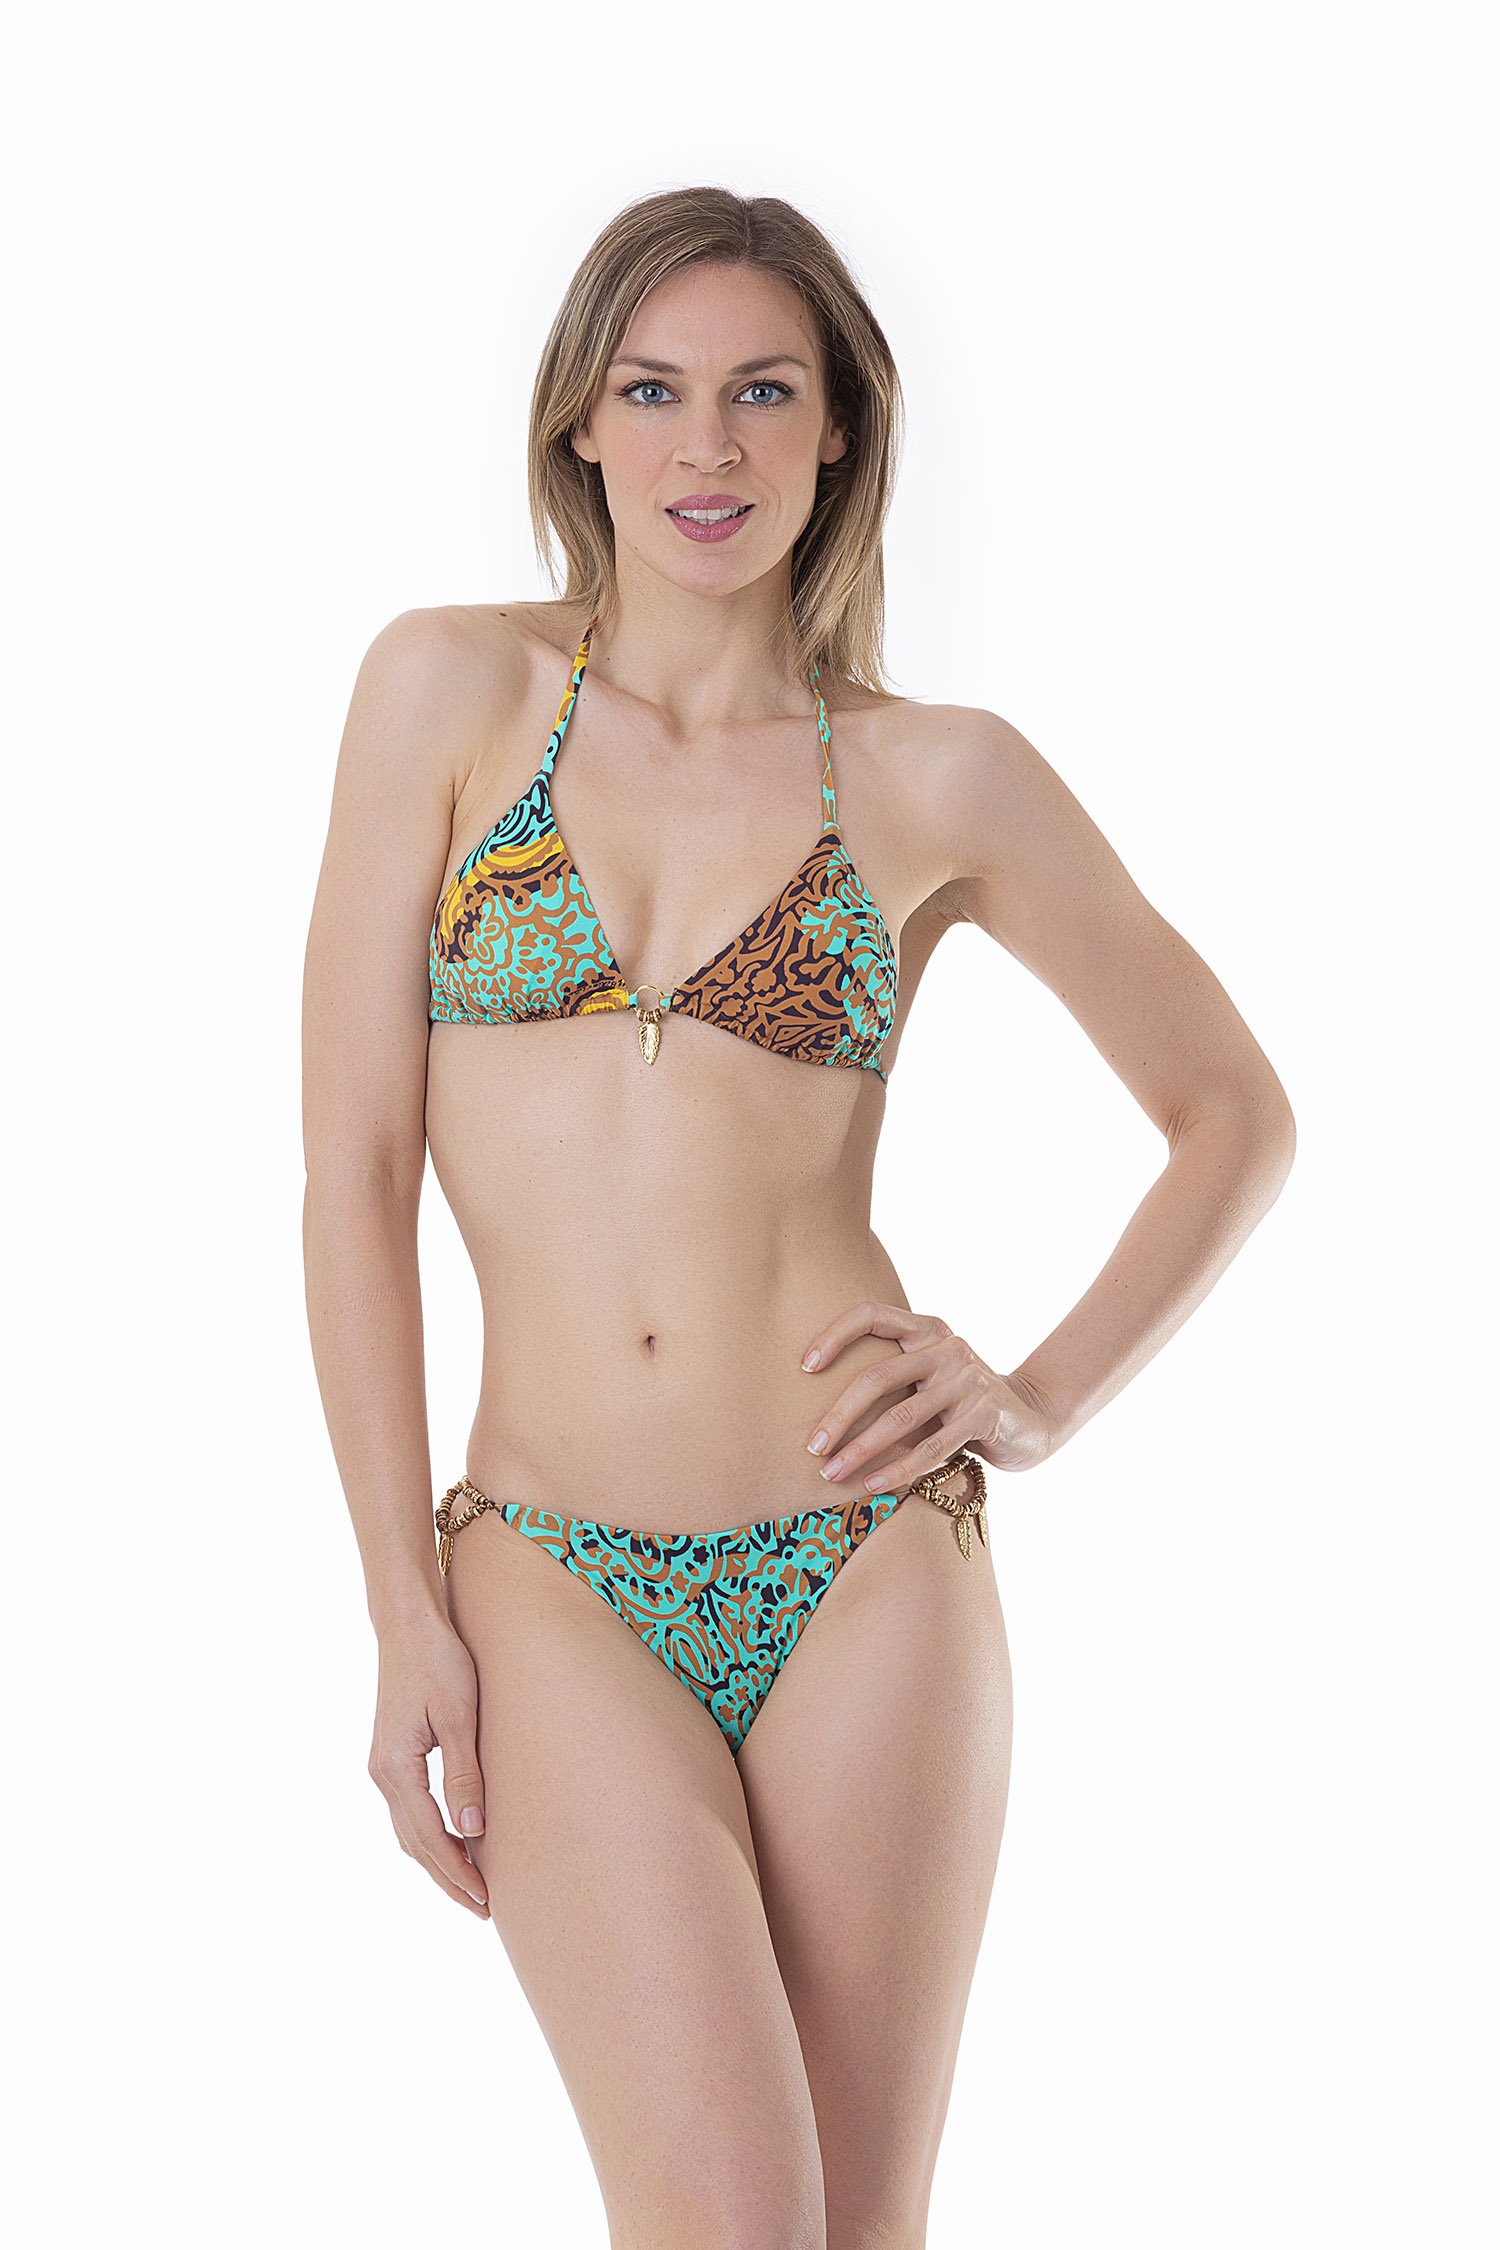 BIKINI LUXE A TRIANGOLO A FANTASIA CON APPLICAZIONI IN BIGIOTTERIA - India Pop Marrone